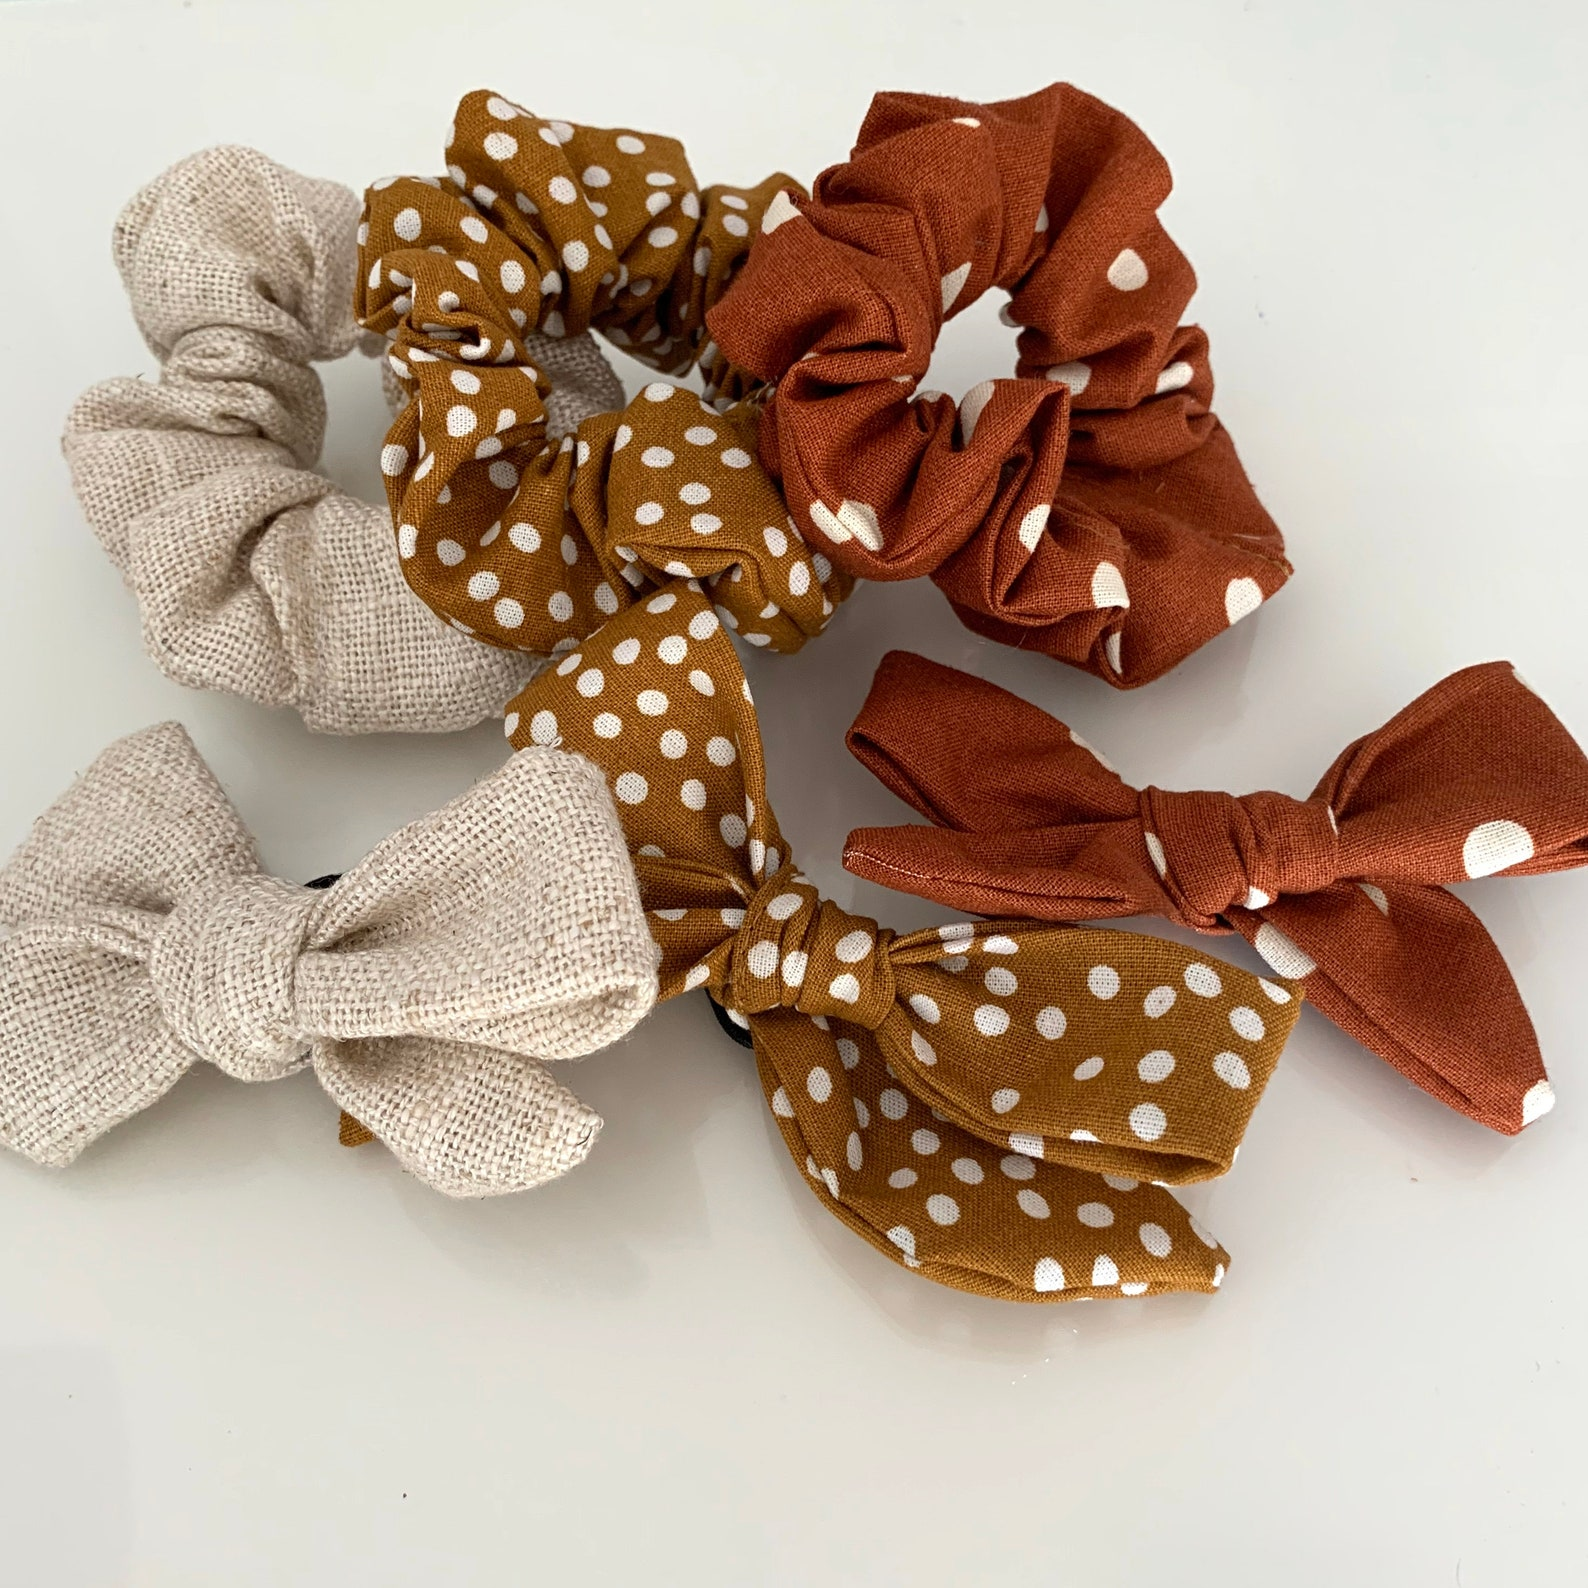 Matching bow tie and scrunchie sets